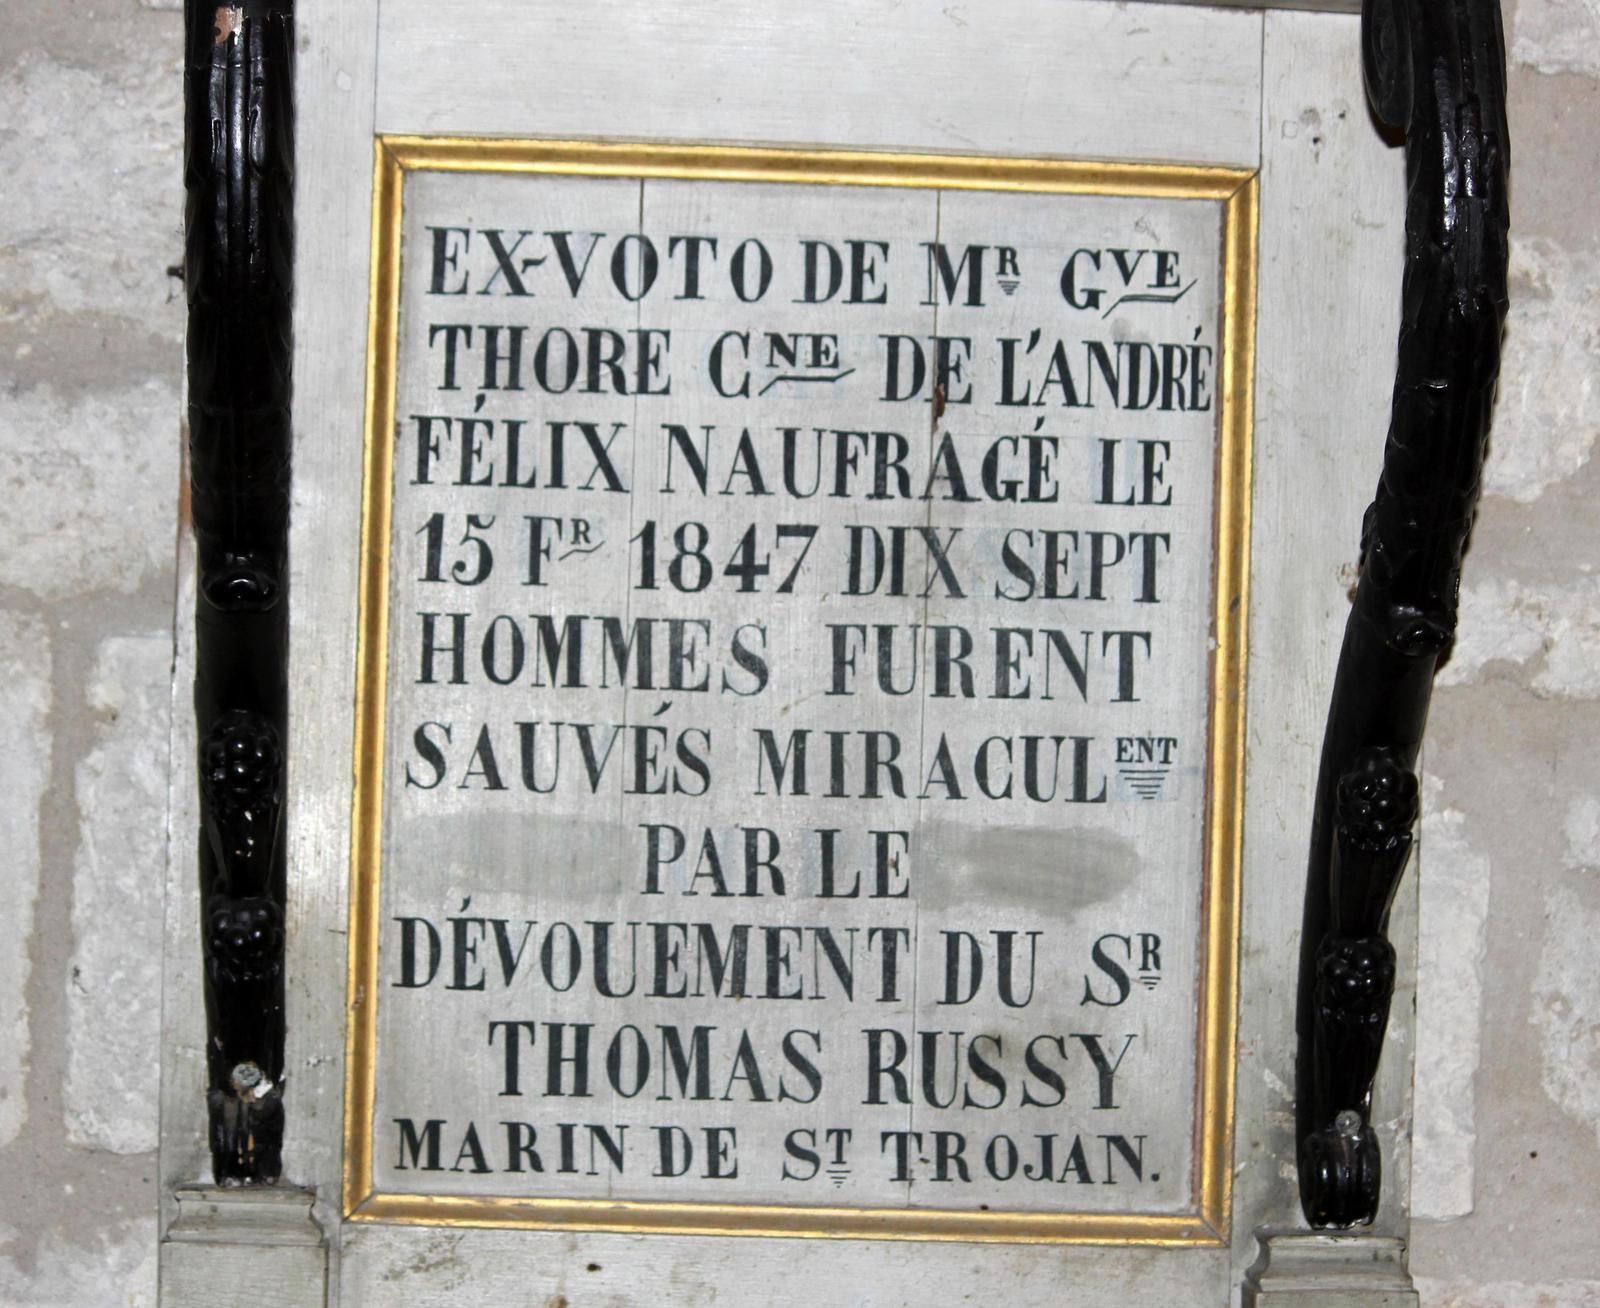 Inscription de l'ex-voto de l'André-Félix